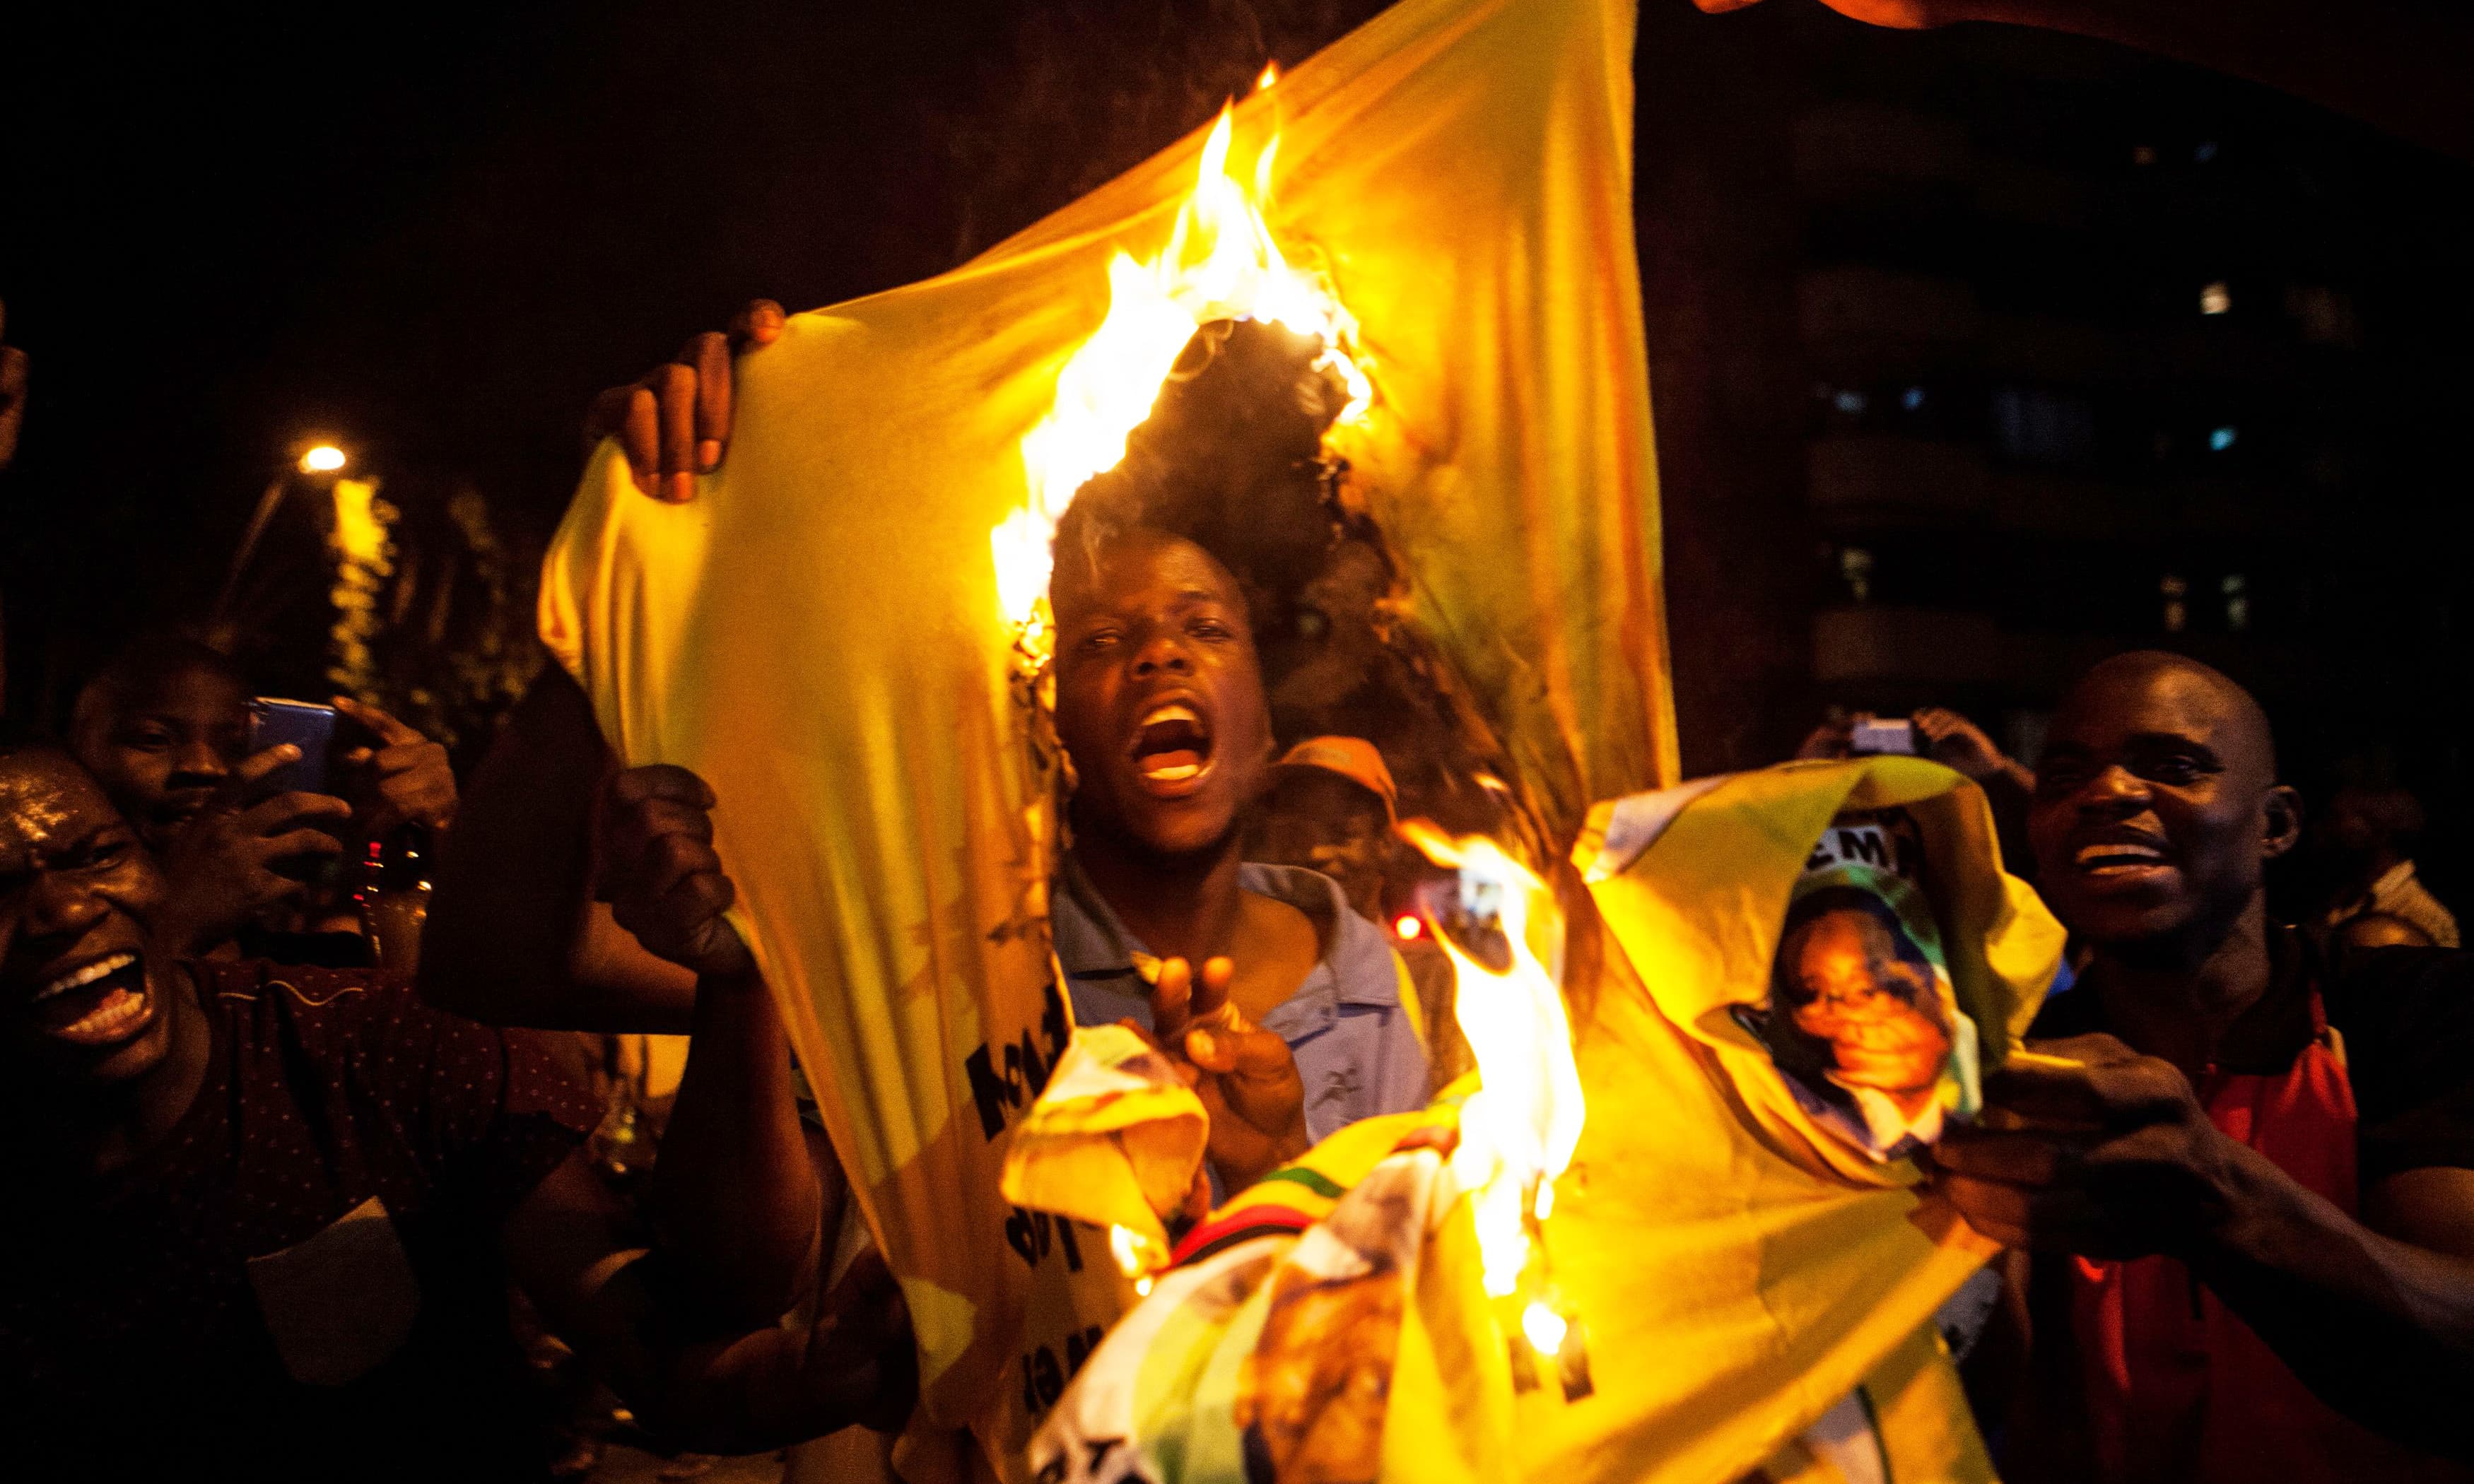 A Zimbabwean national burns a shirt of Zimbabwe's ruling party, the Zimbabwe African National Union Patriotic Front (ZANU PF), as hundreds of Zimbabweans living in South Africa celebrate the resignation of Zimbabwe's president Robert Mugabe in the streets of the district of Hillbrow in Johannesburg. —AFP